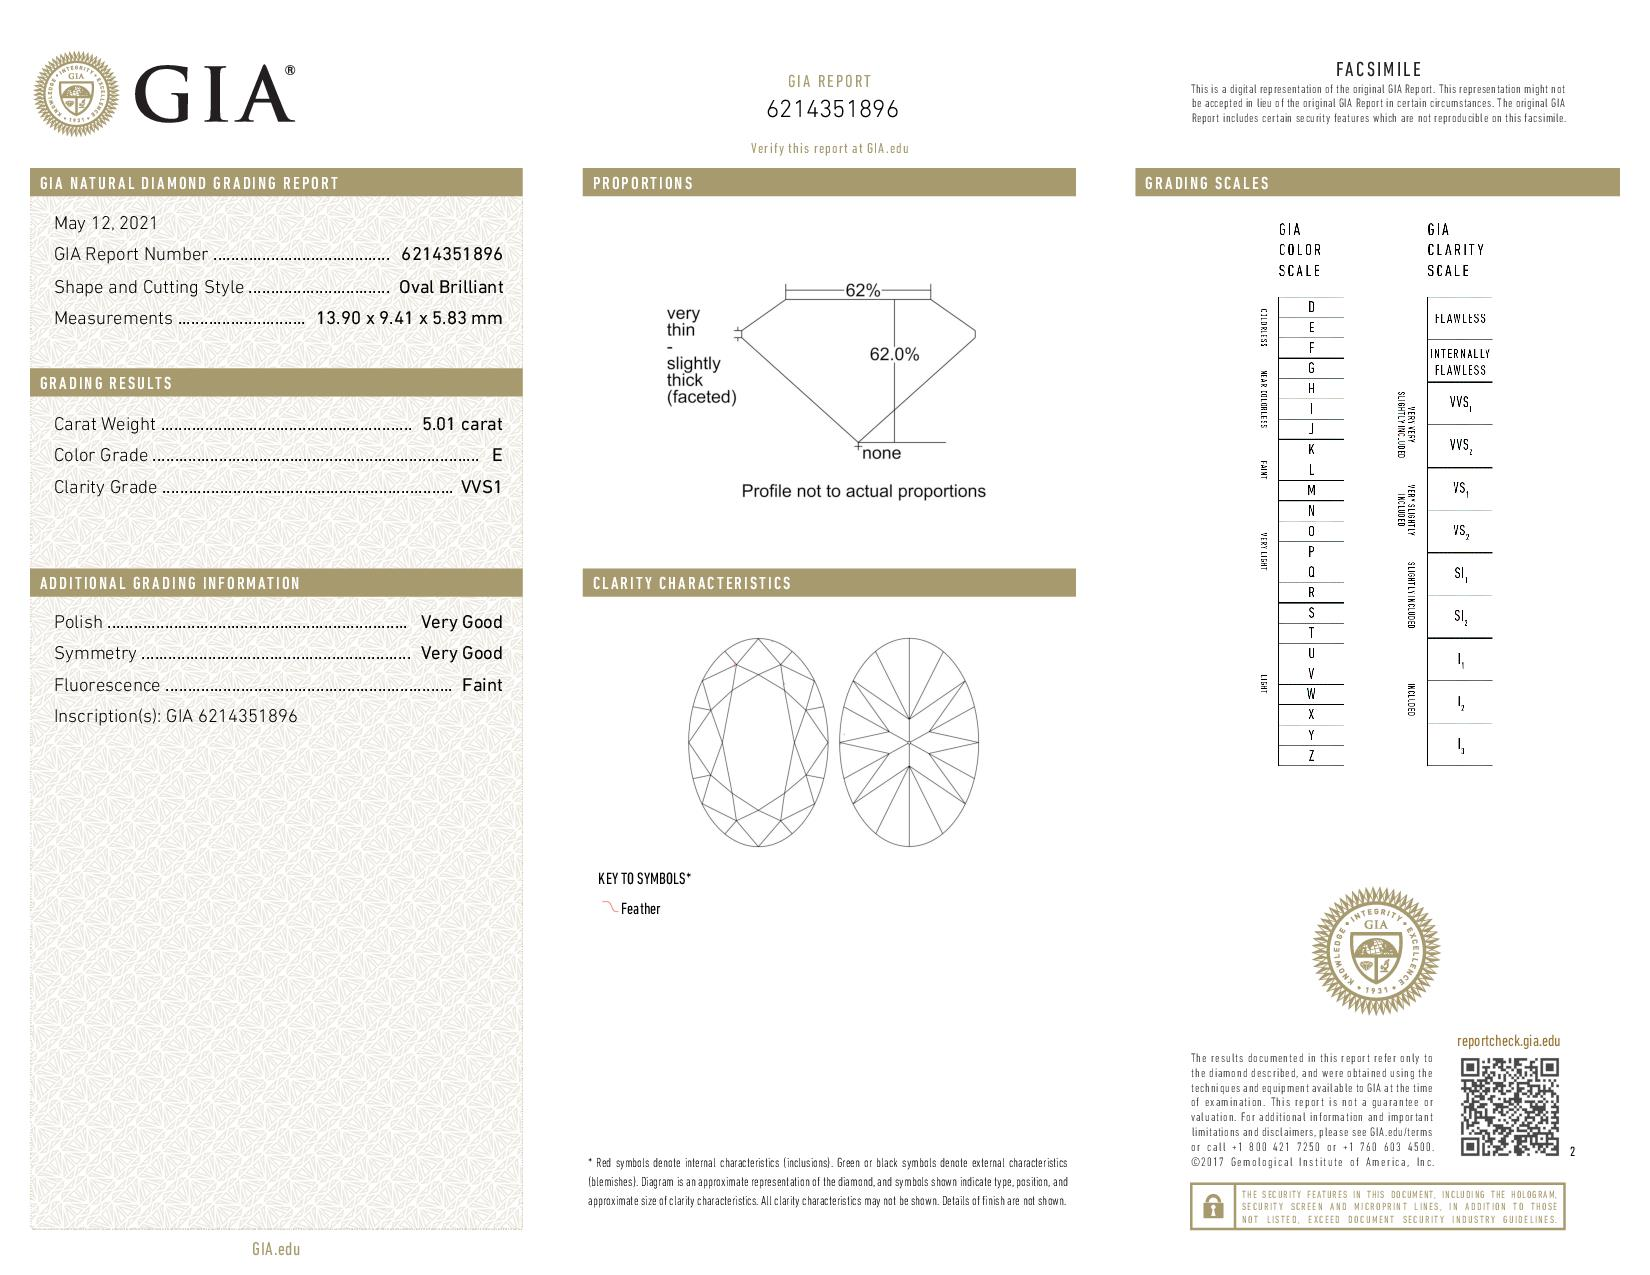 This is a 5.01 carat oval shape, E color, VVS1 clarity natural diamond accompanied by a GIA grading report.